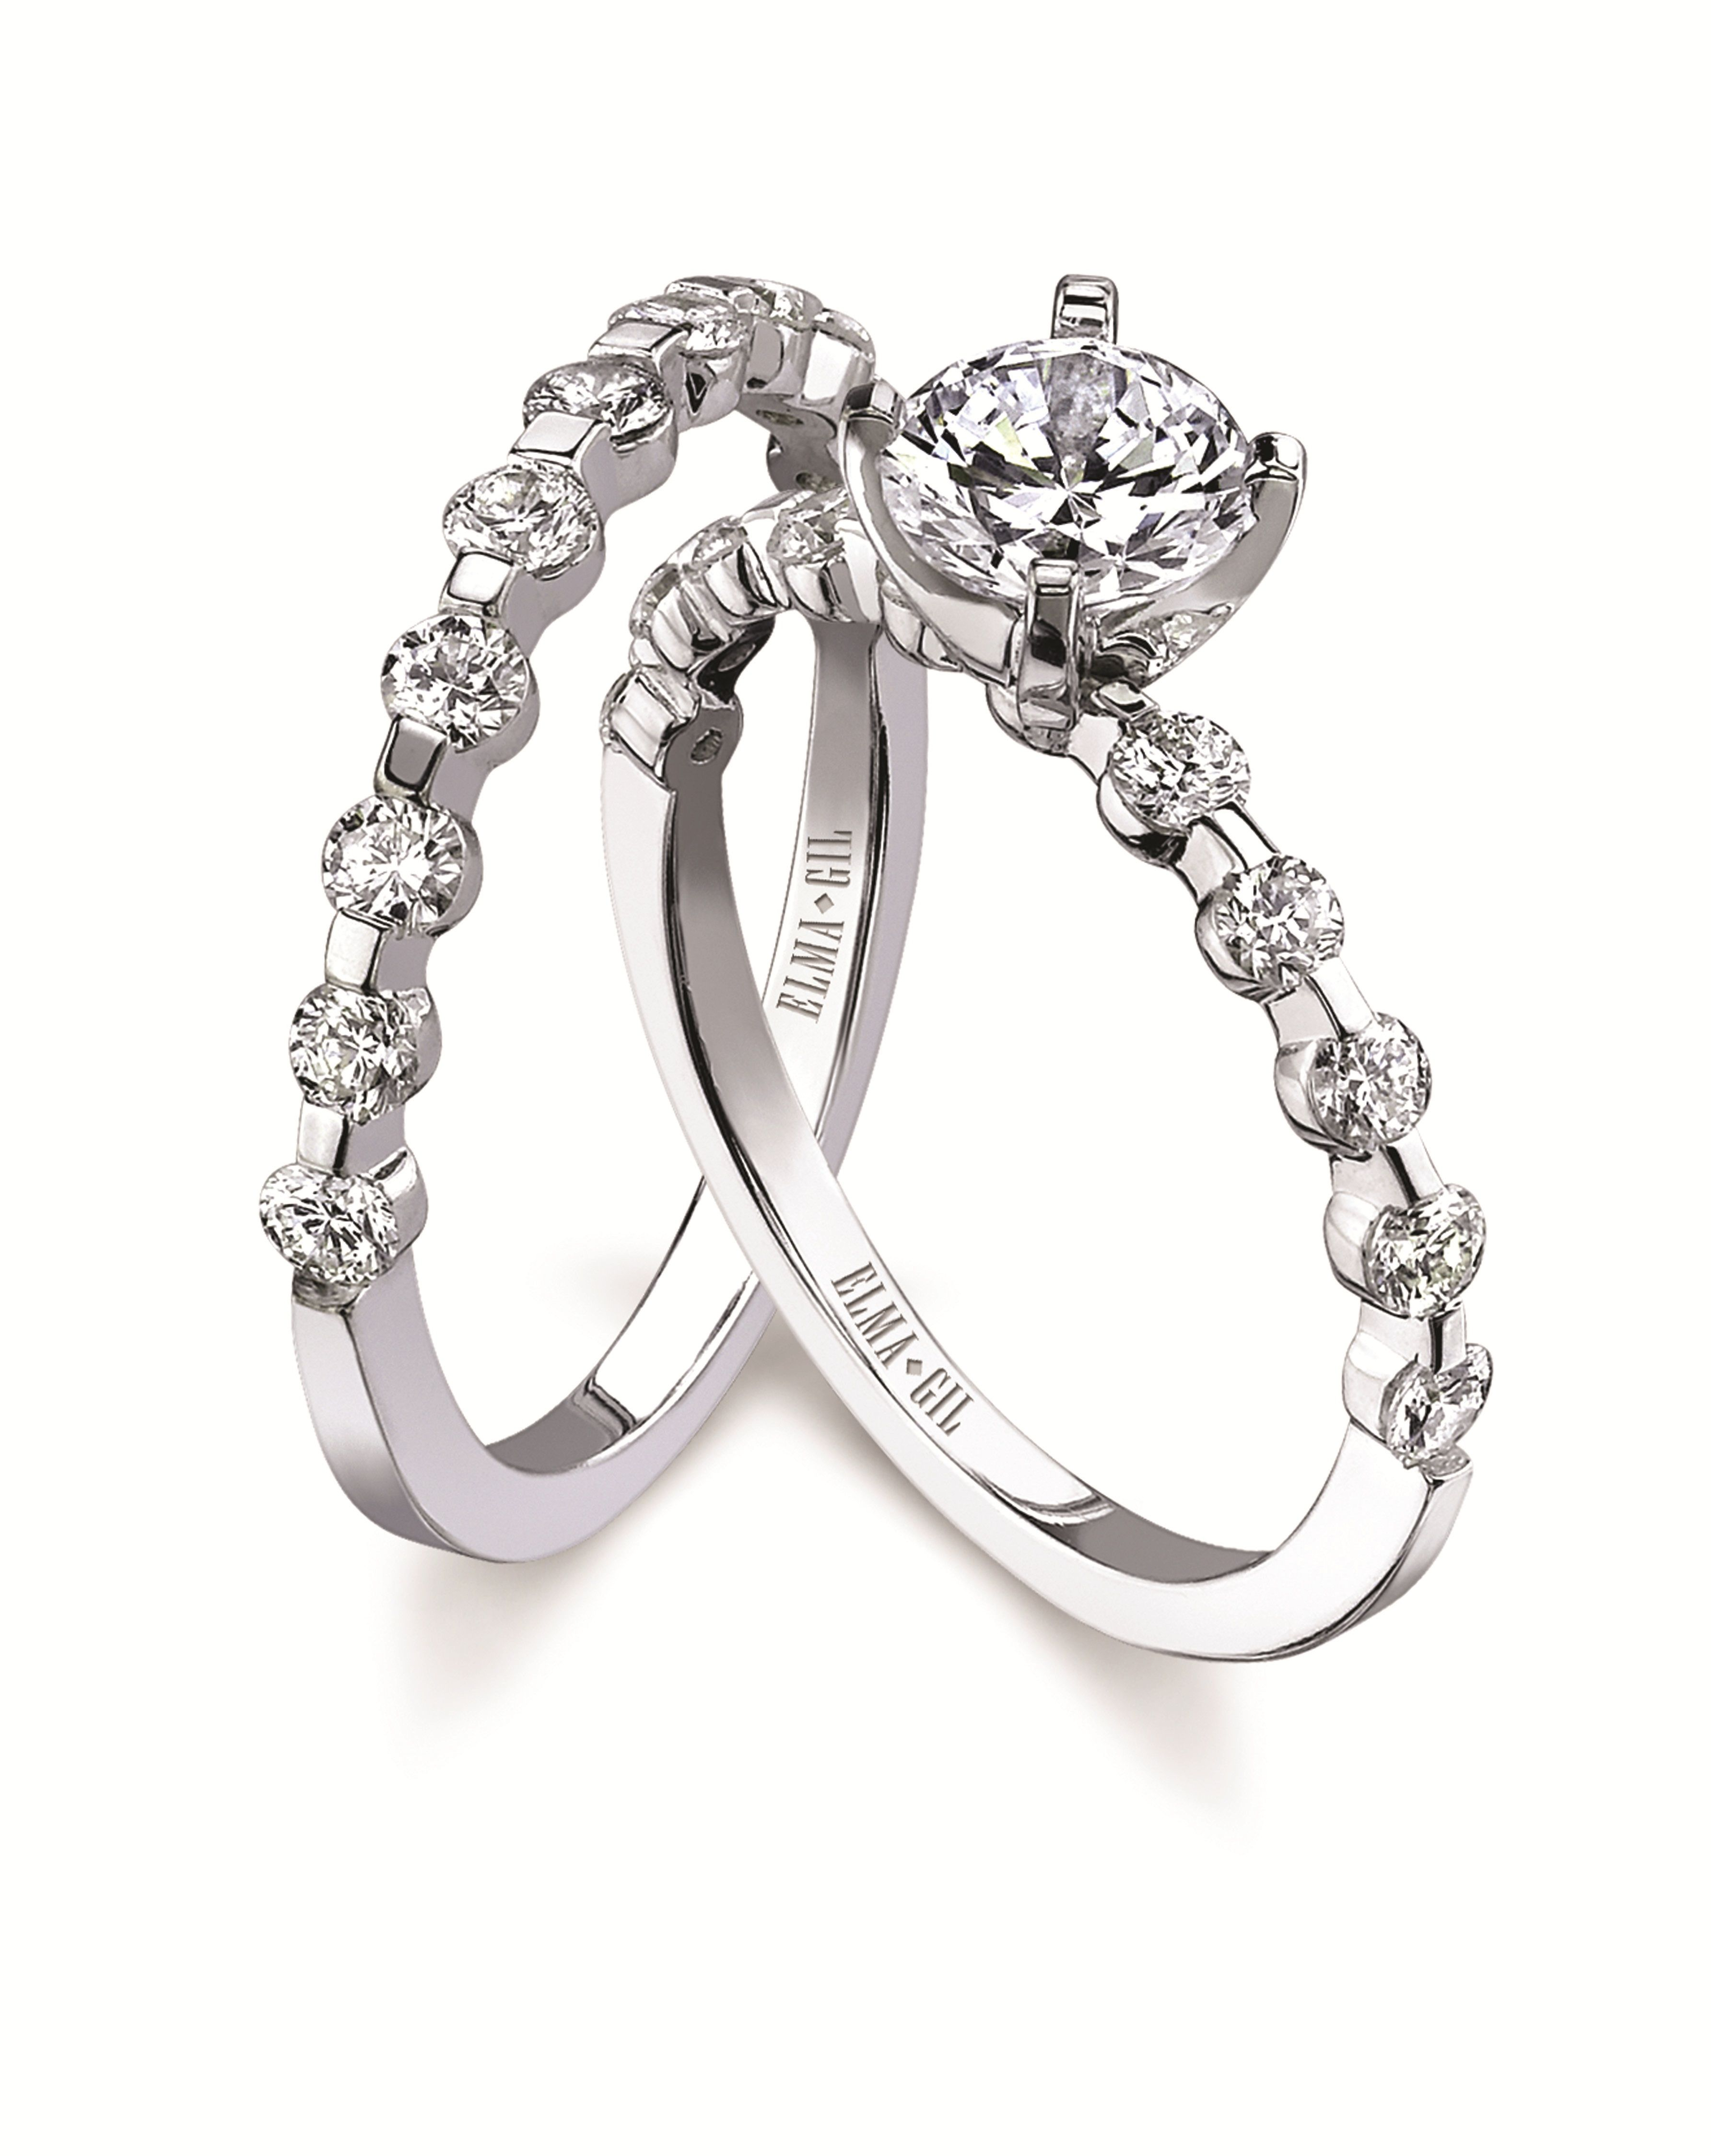 18kt White Gold Engagement Ring By Elmagil Style 245